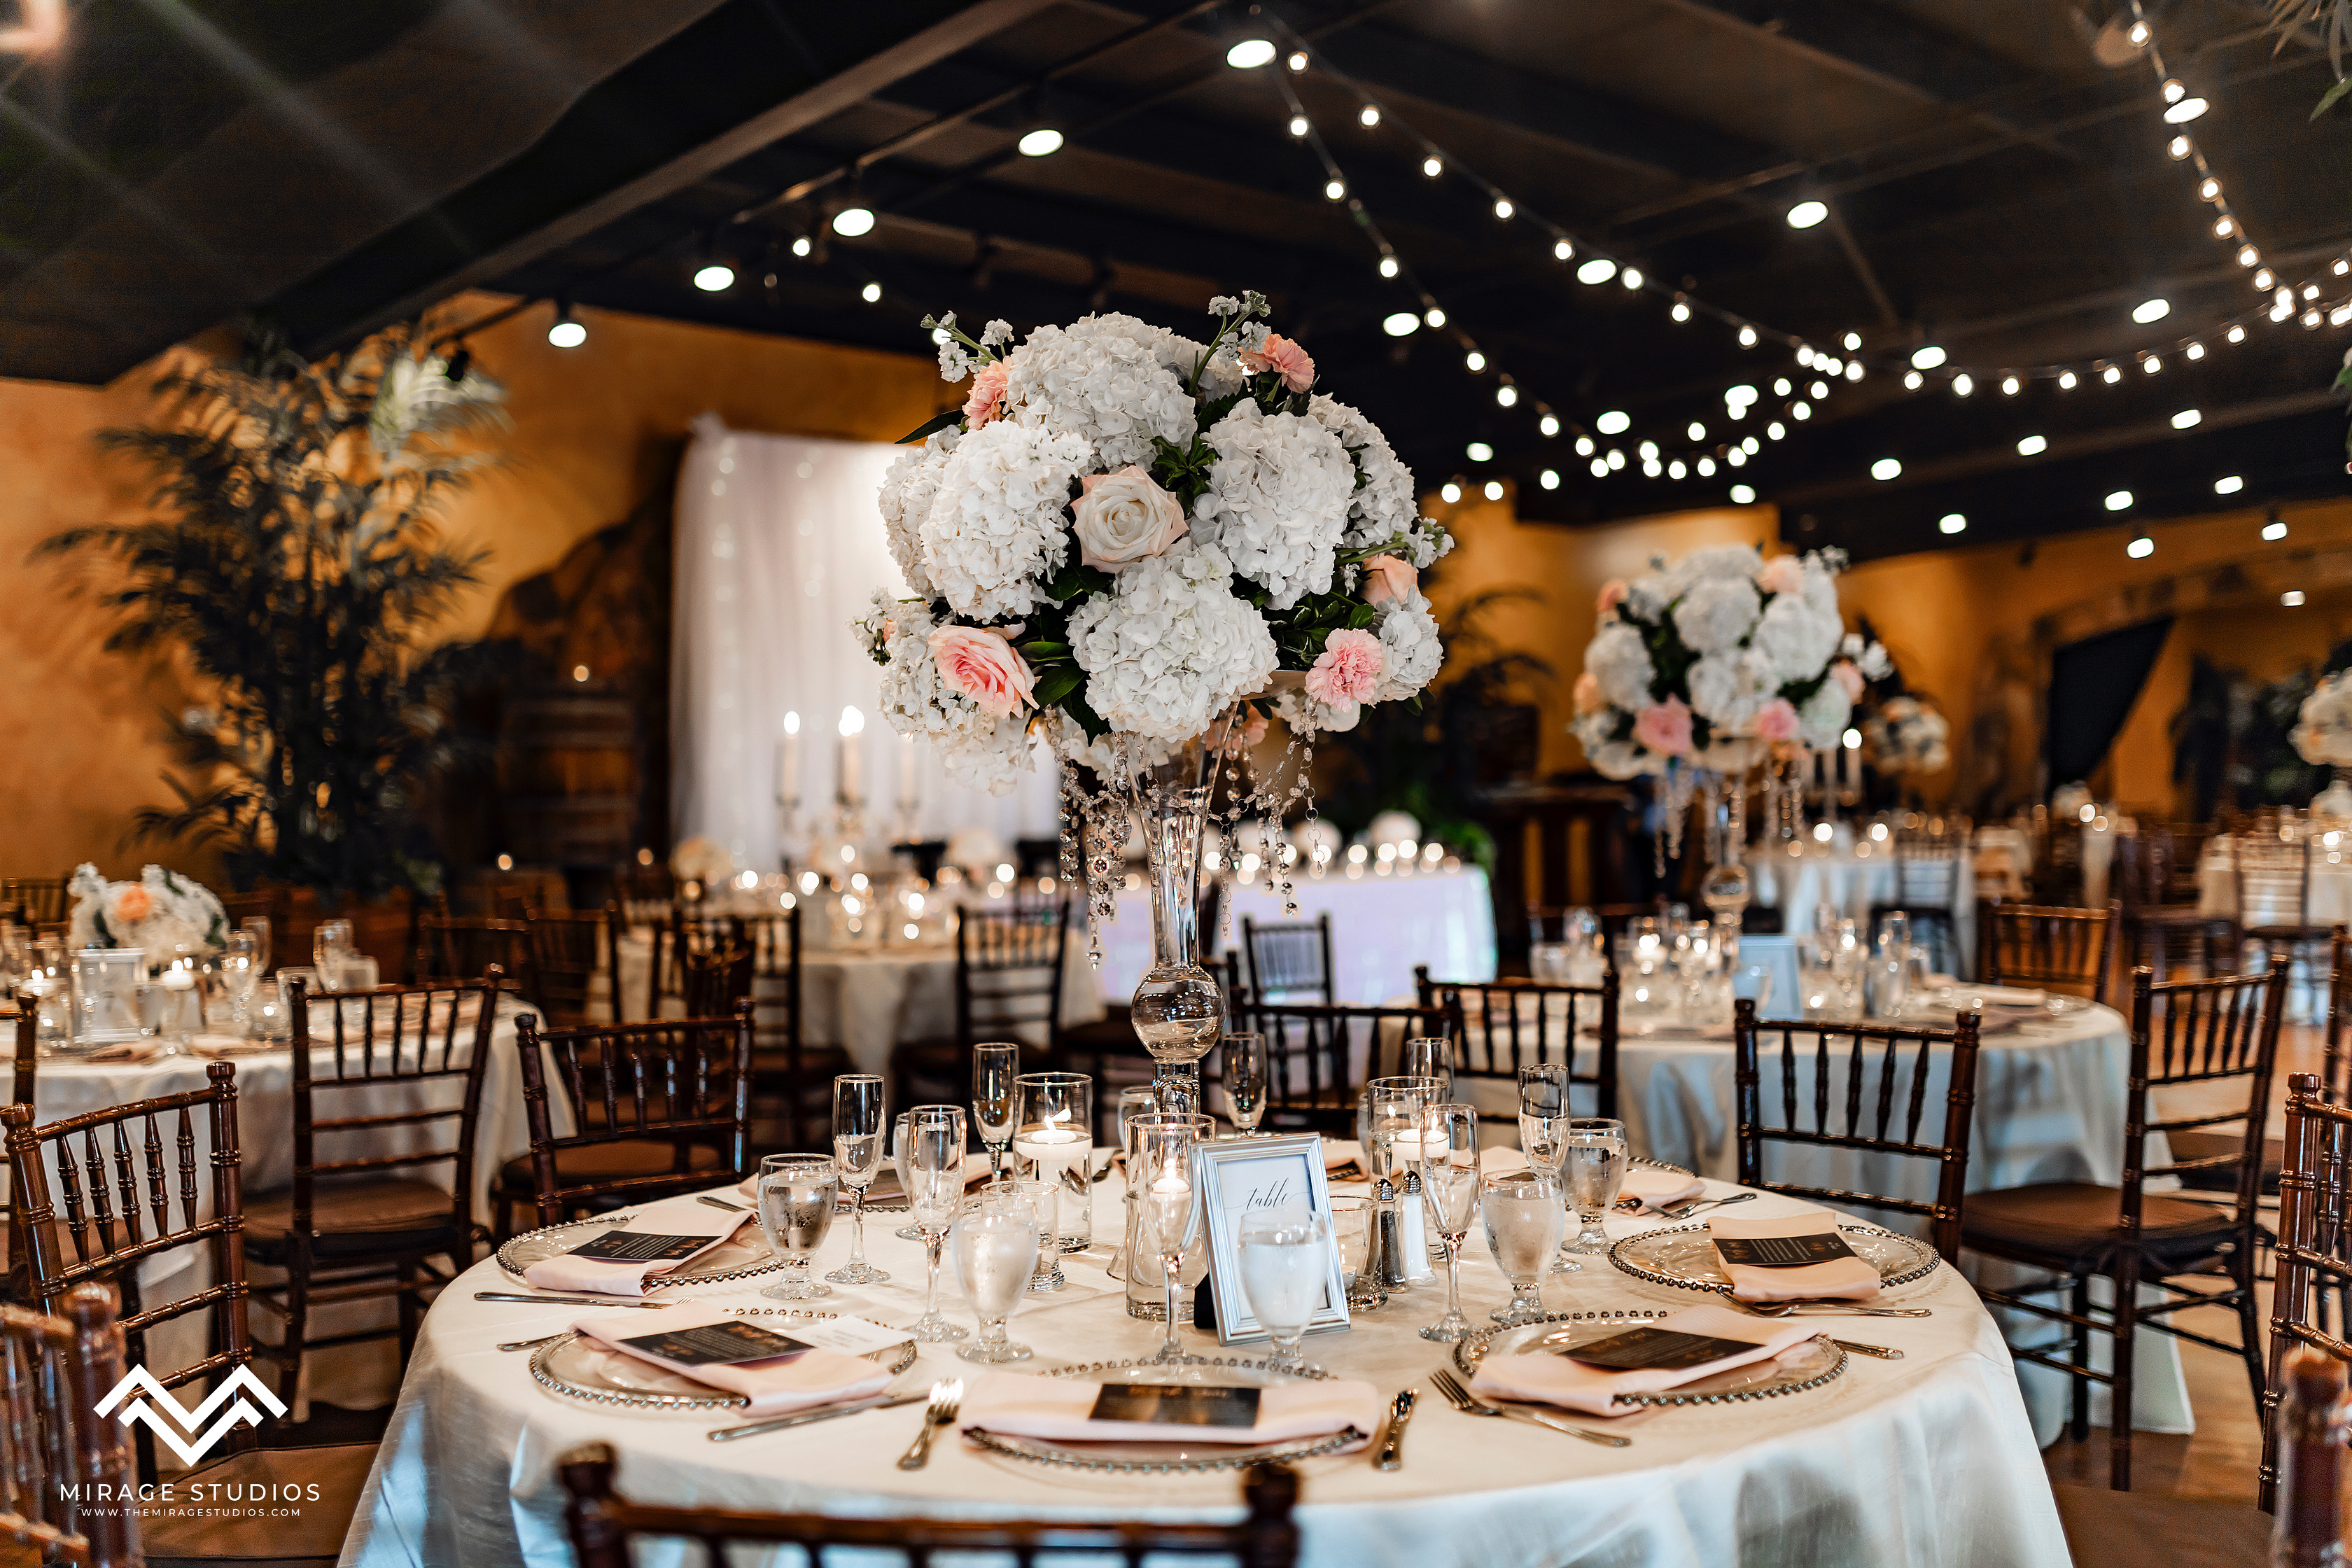 Houston Wedding Planner, Houston Florist, Houston Event Design - Events de Luxe